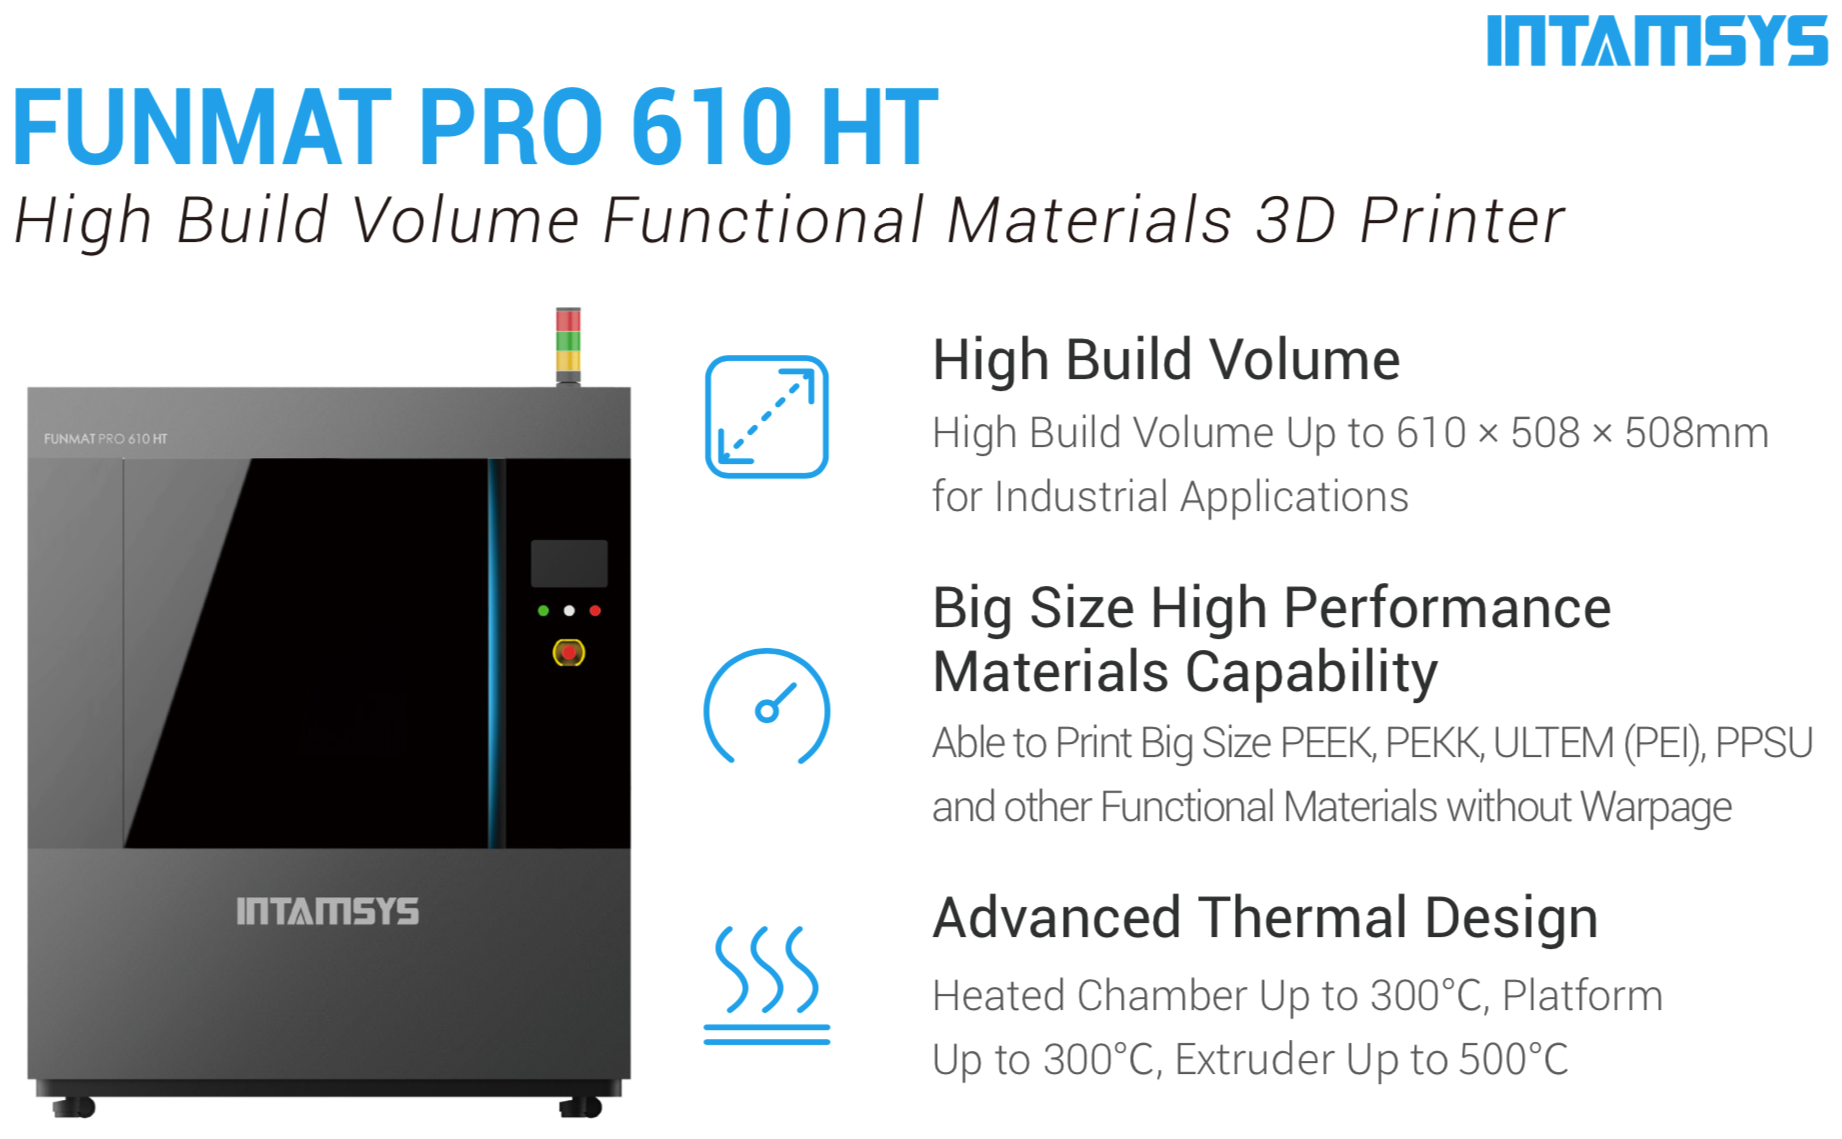 INTAMSYS FUNMAT PRO 610 HT Full-size High Performance Functional Materials 3D Printer